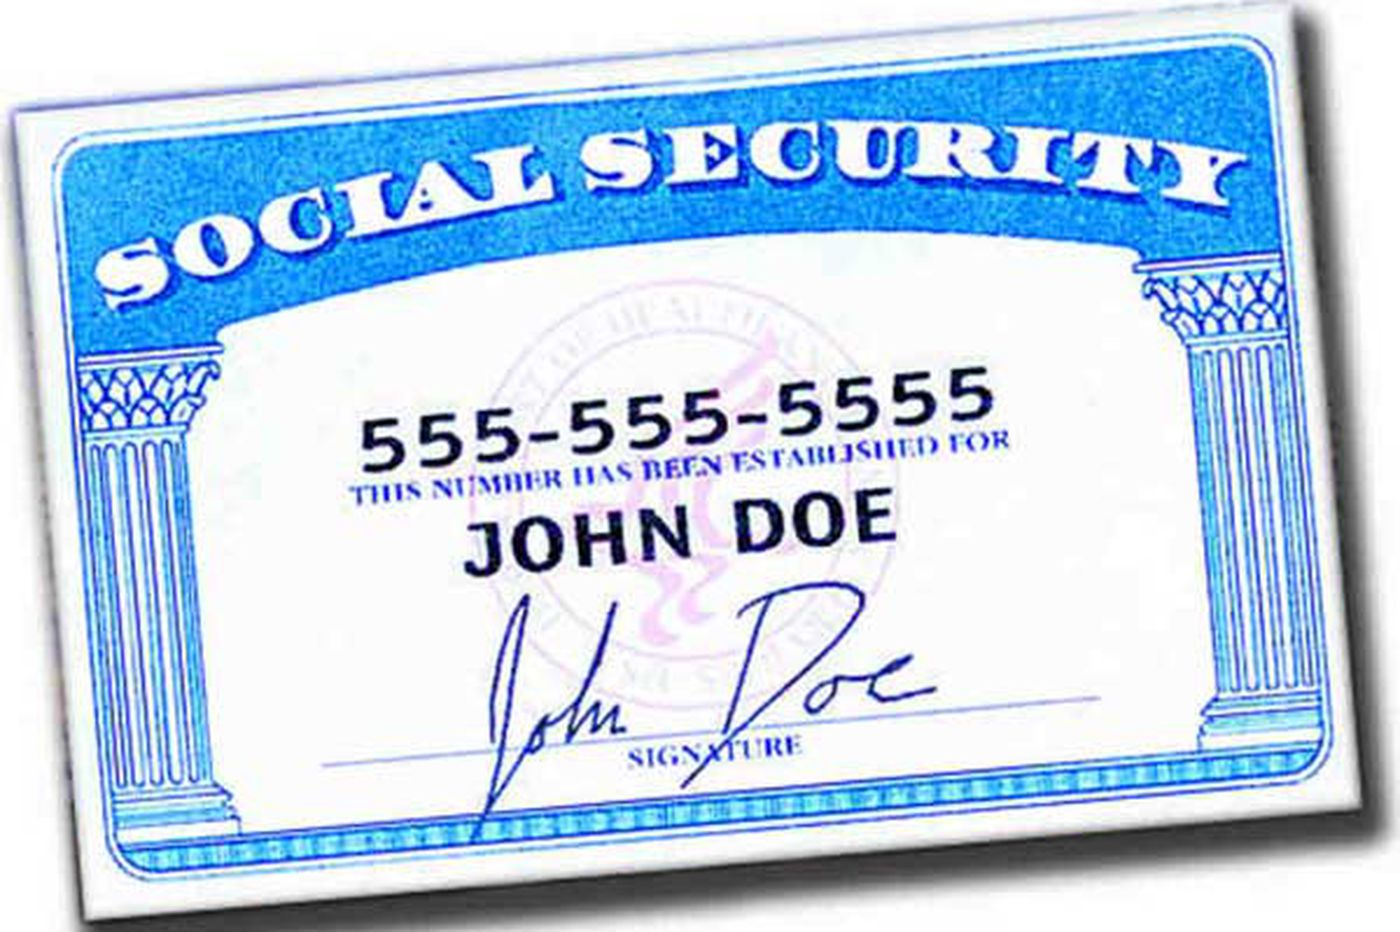 A new way to look at Social Security - without the fear